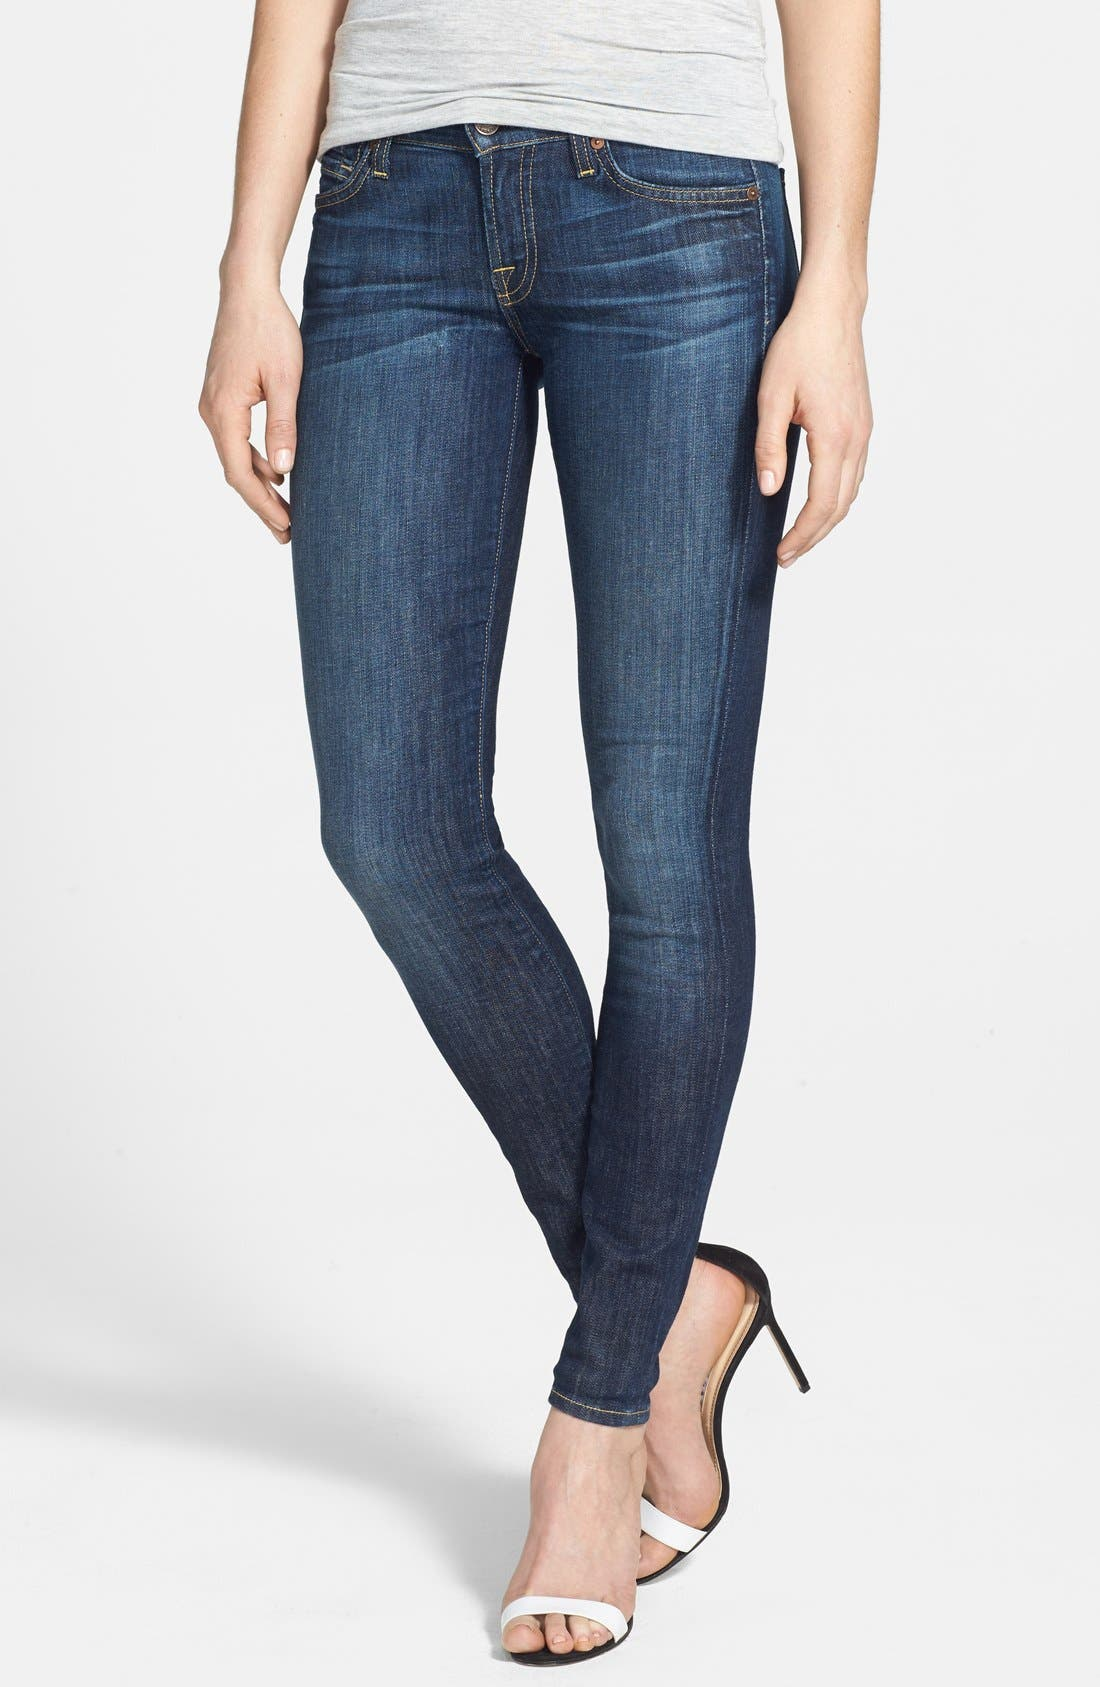 Alternate Image 1 Selected - 7 For All Mankind® 'The Skinny' Mid Rise Skinny Jeans (Nouveau New York Dark)